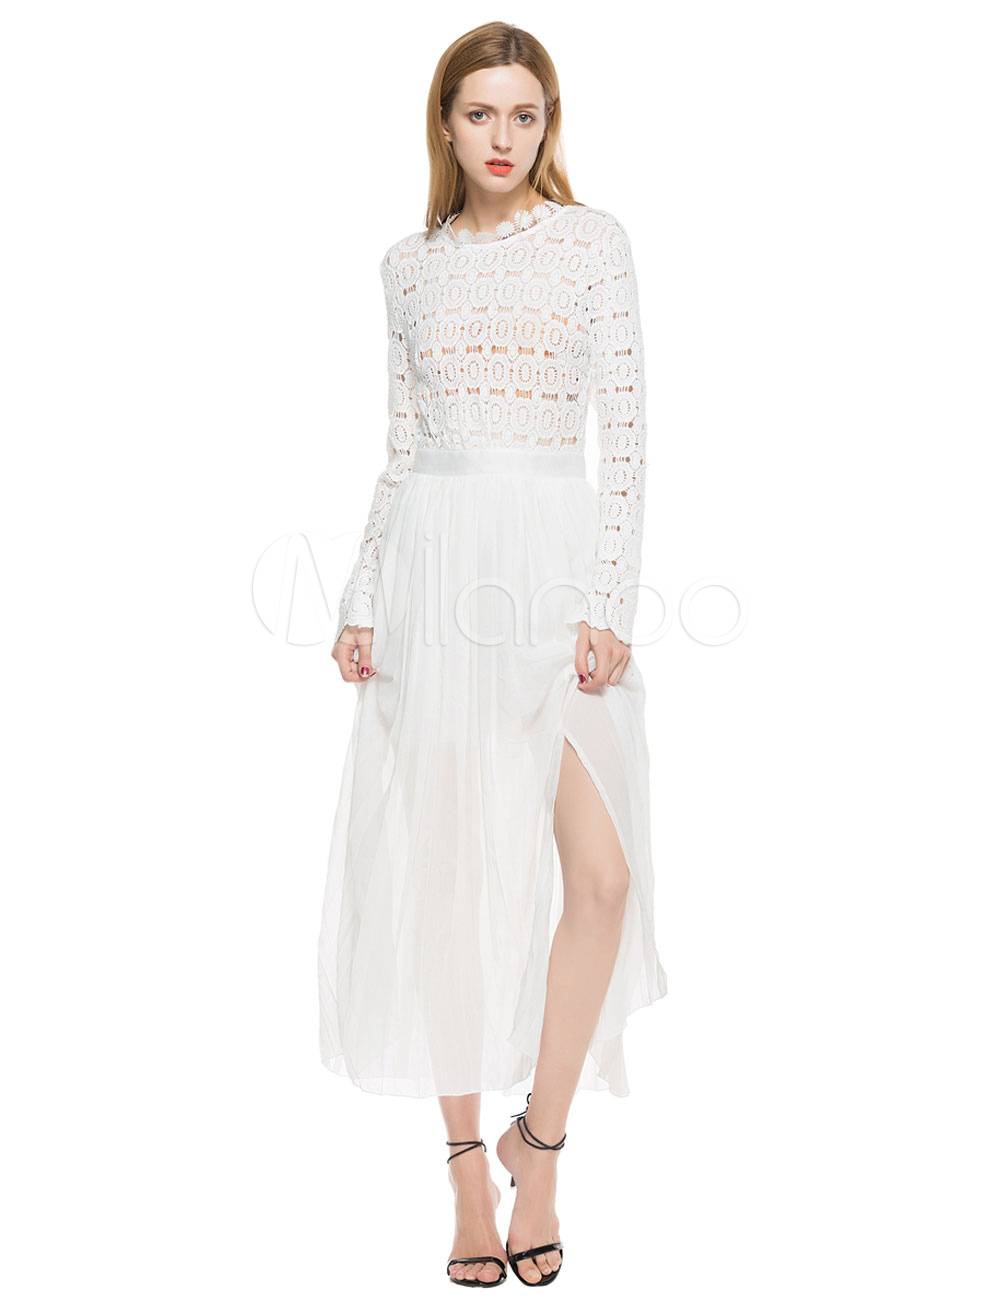 Buy White Long Dress Chiffon Round Neck Long Sleeve Cut Out Slit Floor Length Maxi Dress for $43.99 in Milanoo store